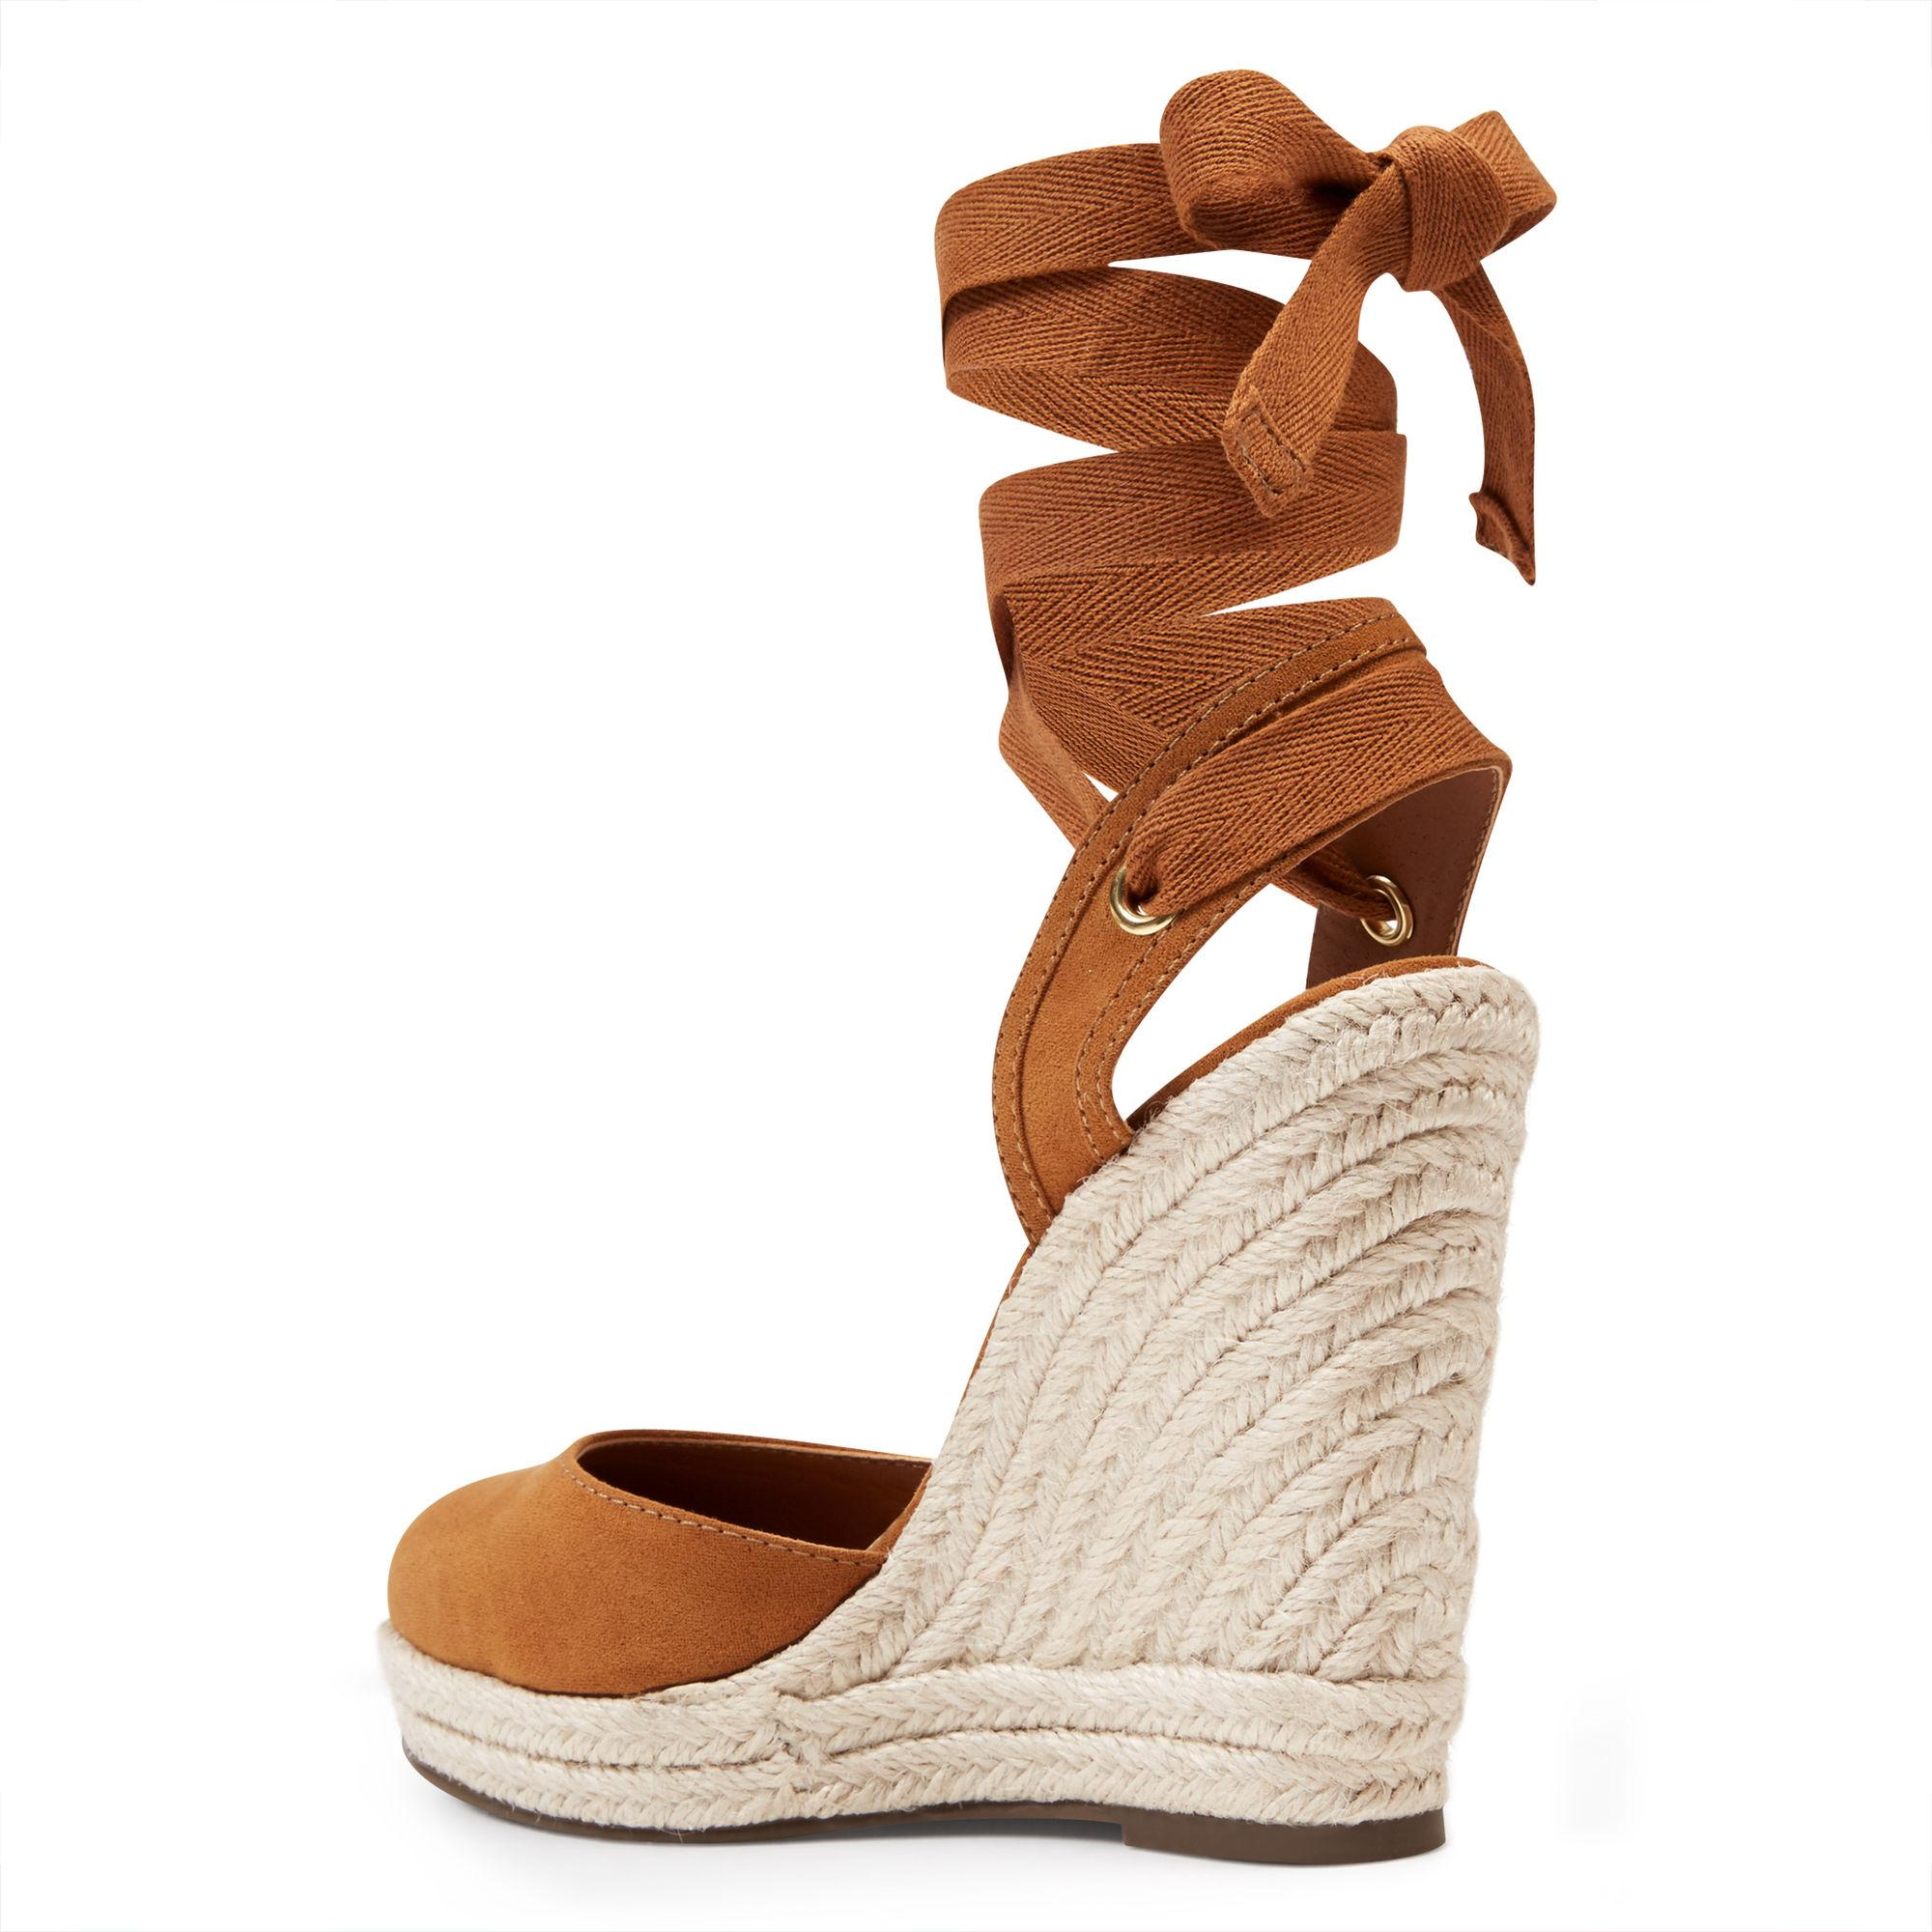 acaa3e9c2531 Lyst - Nine West Prescot Espadrille Wedges in Brown